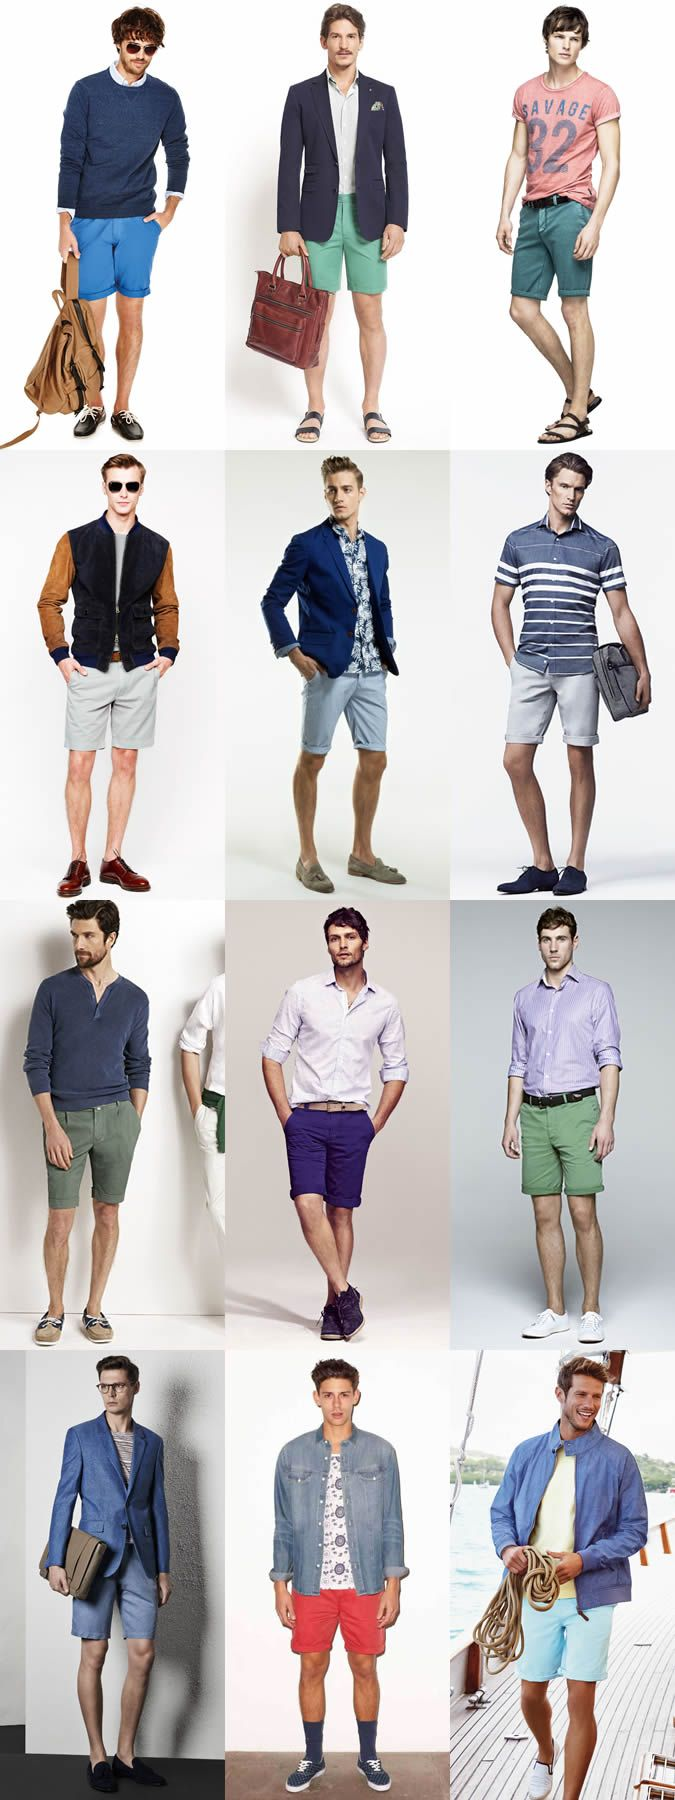 Men's Shorts - Outfit Inspiration Lookbook: